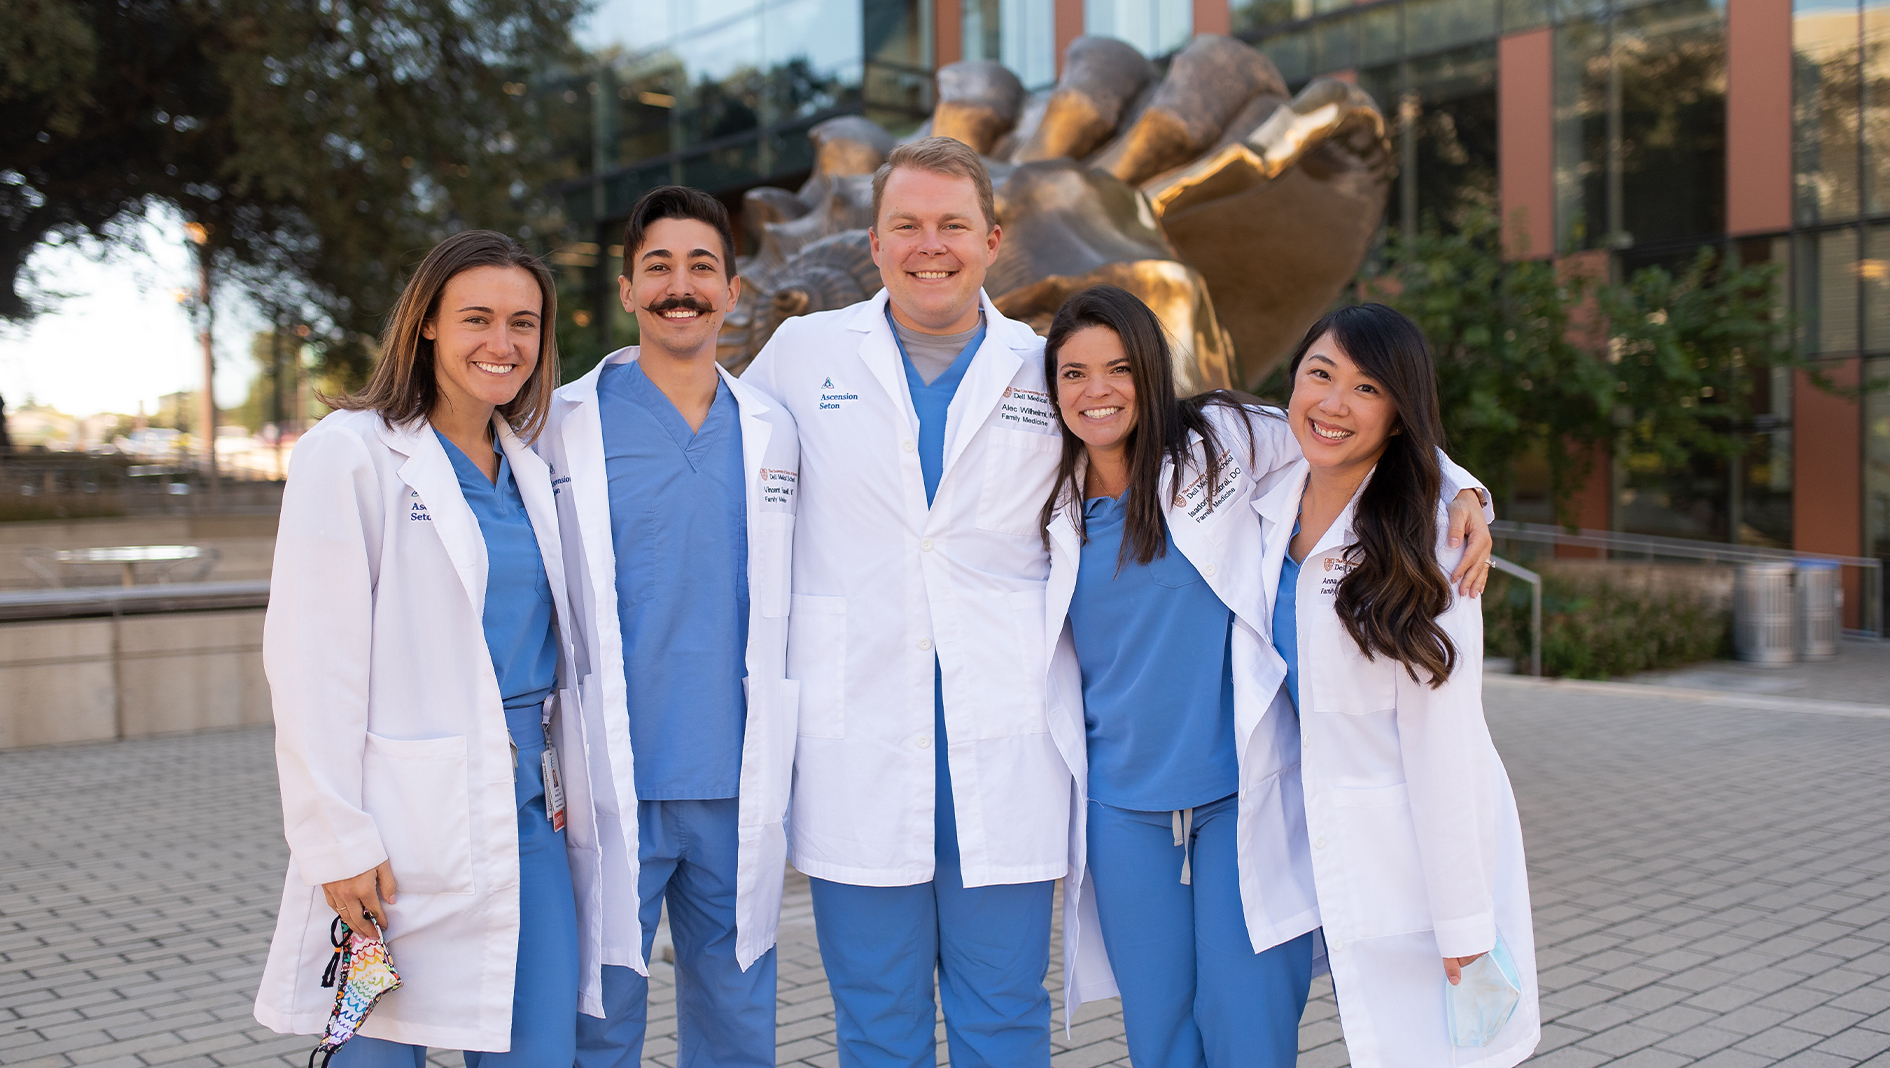 Class of 2022 Family Medicine residents gathered together outdoors.